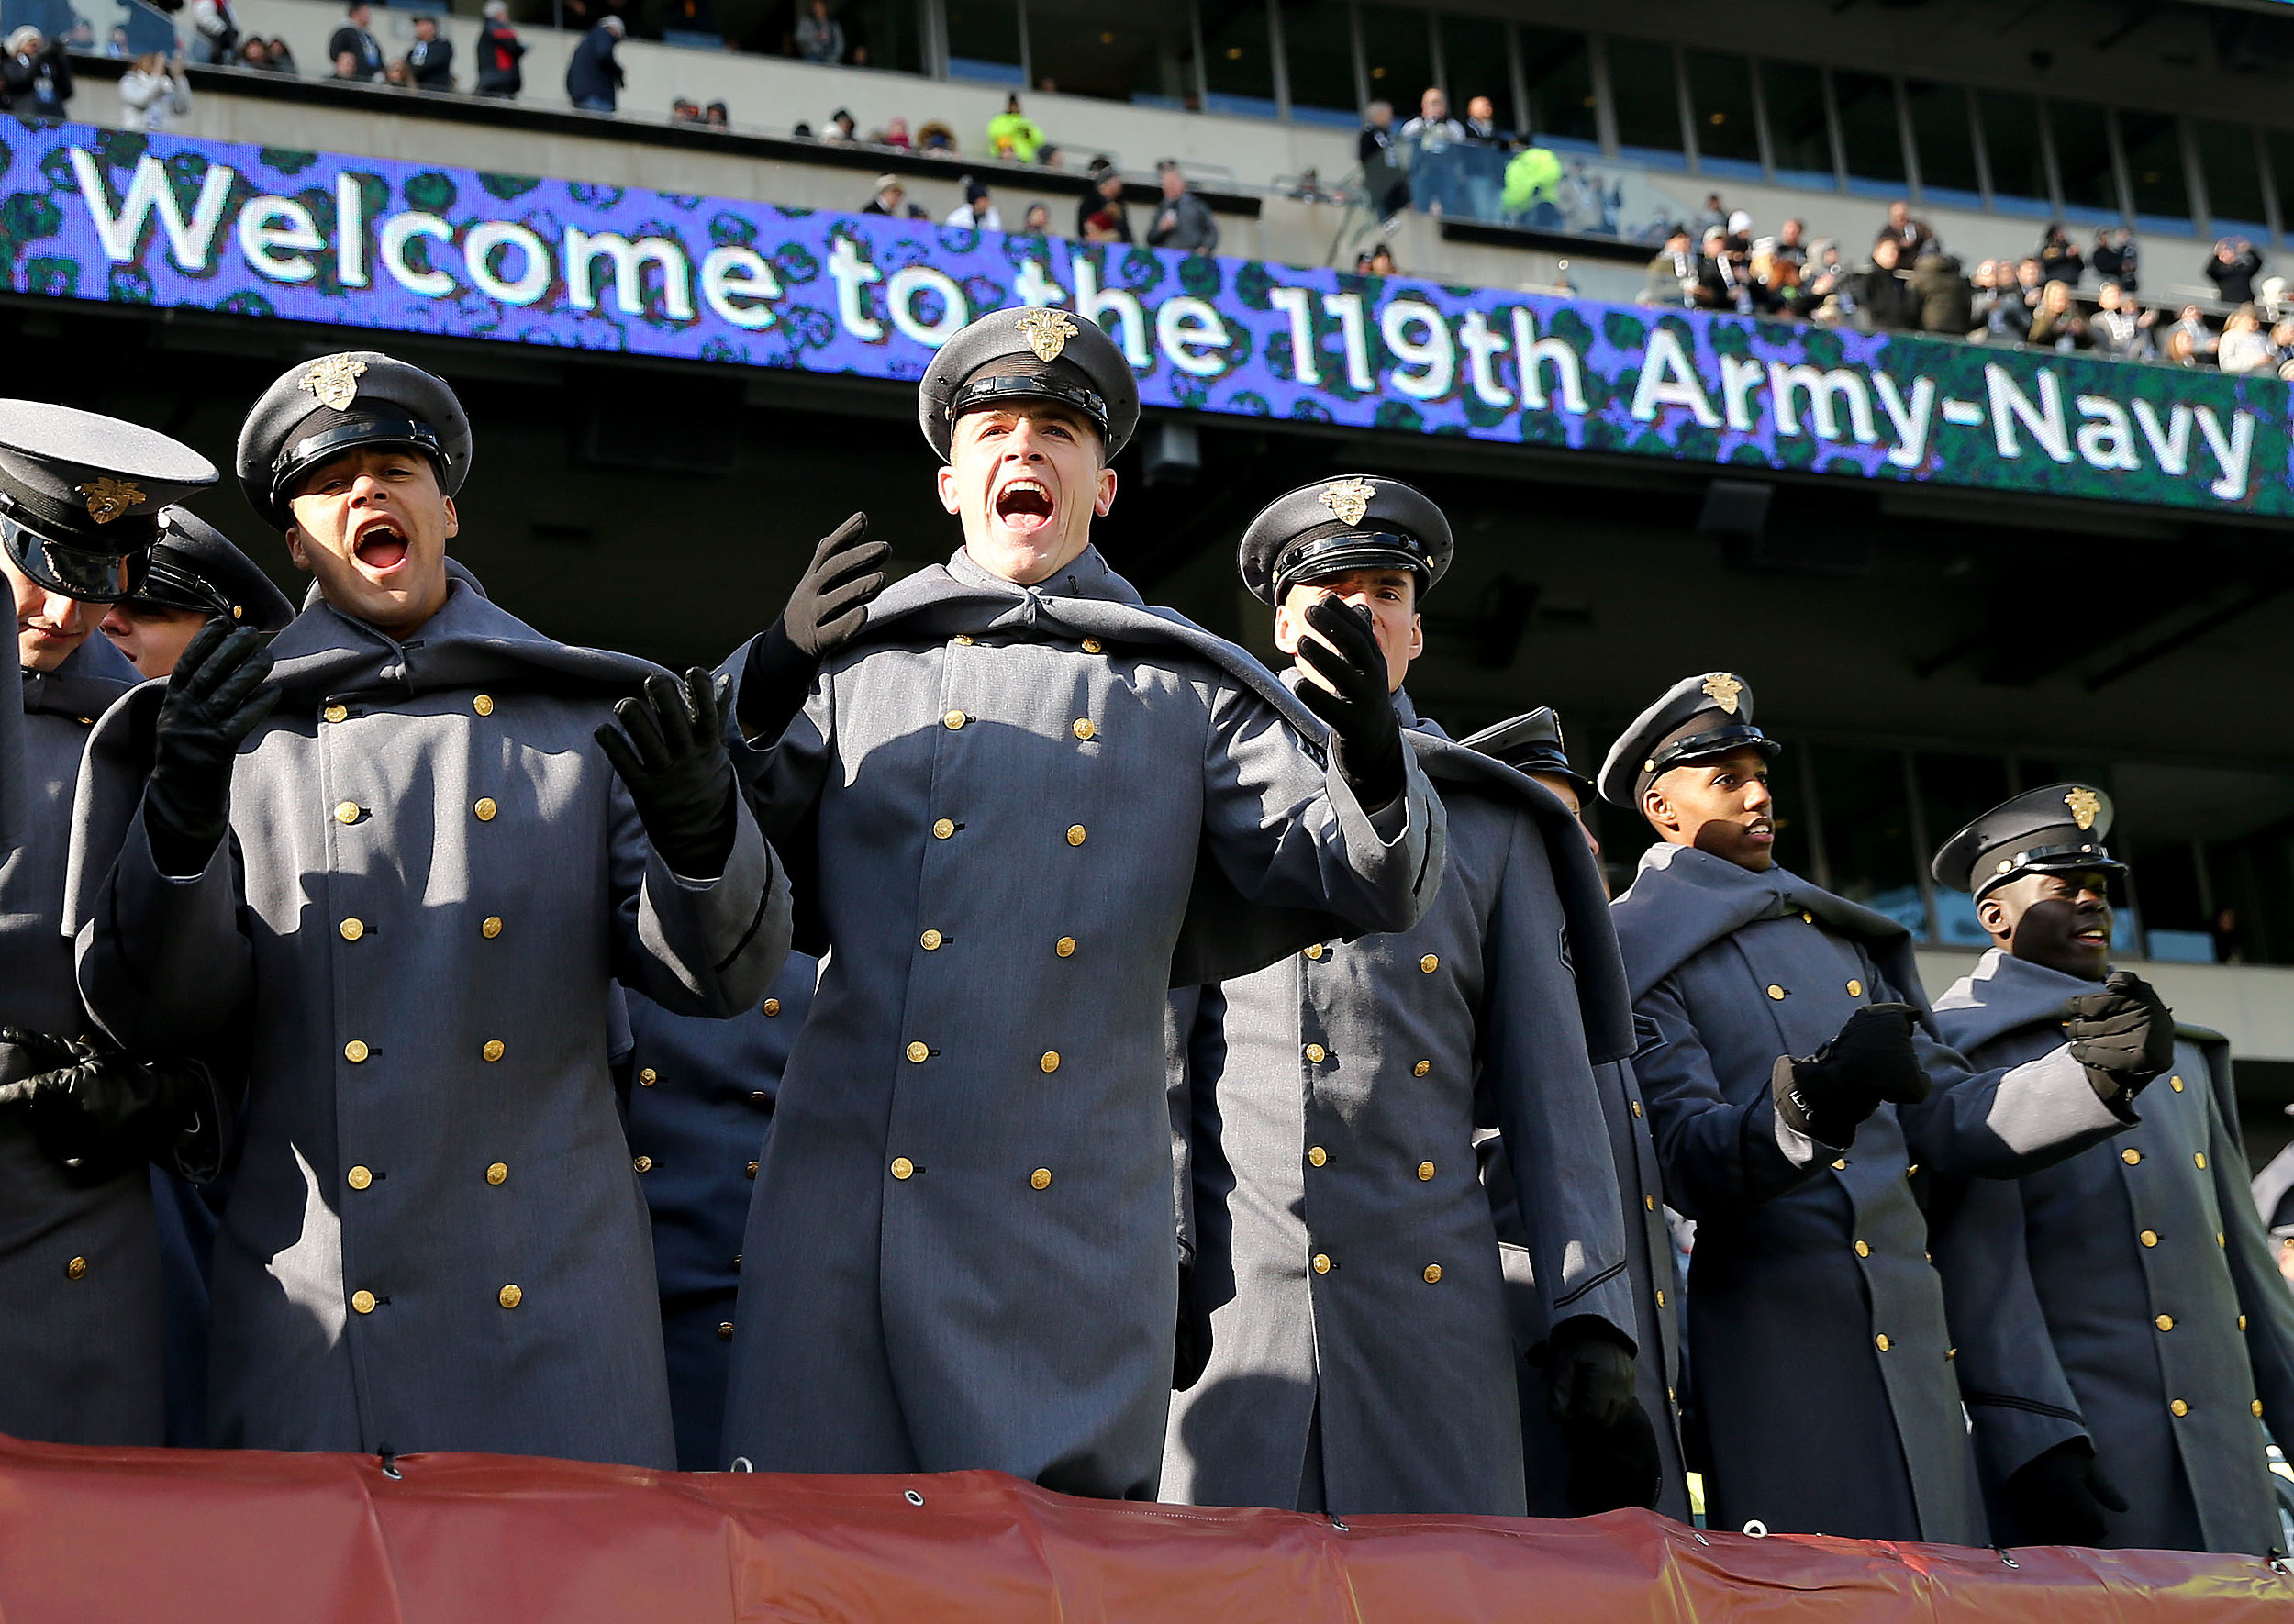 Army Tops Navy For 3rd Straight Year, POTUS Trump In Attendance